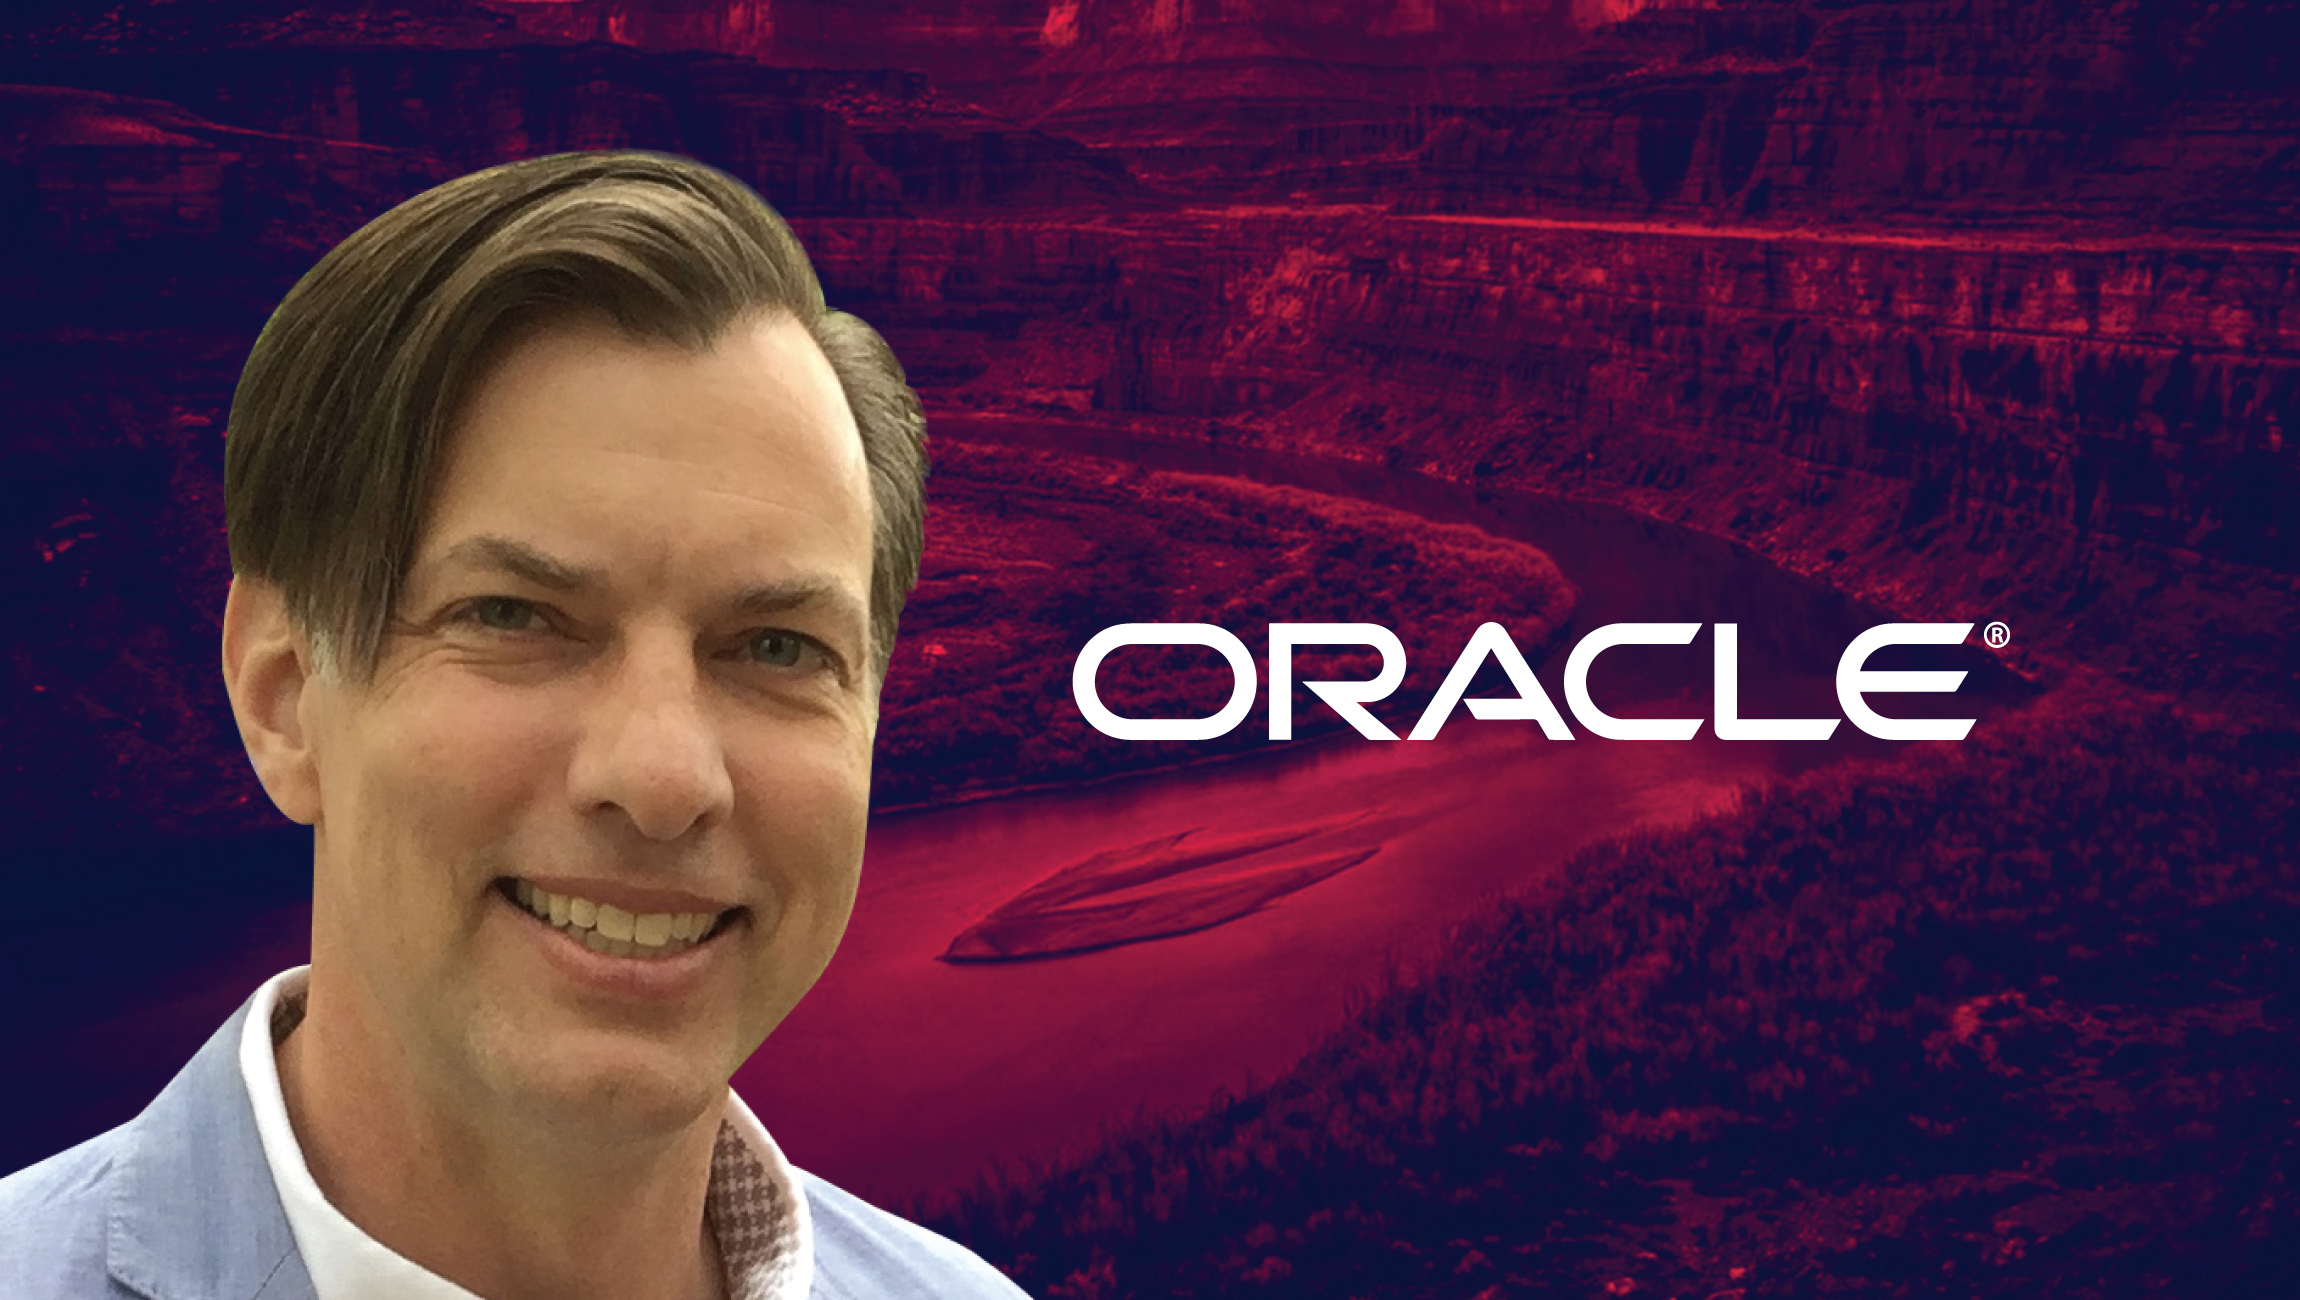 Interview With Fortuné Alexander, Sr. Director, CX Product Strategy at Oracle